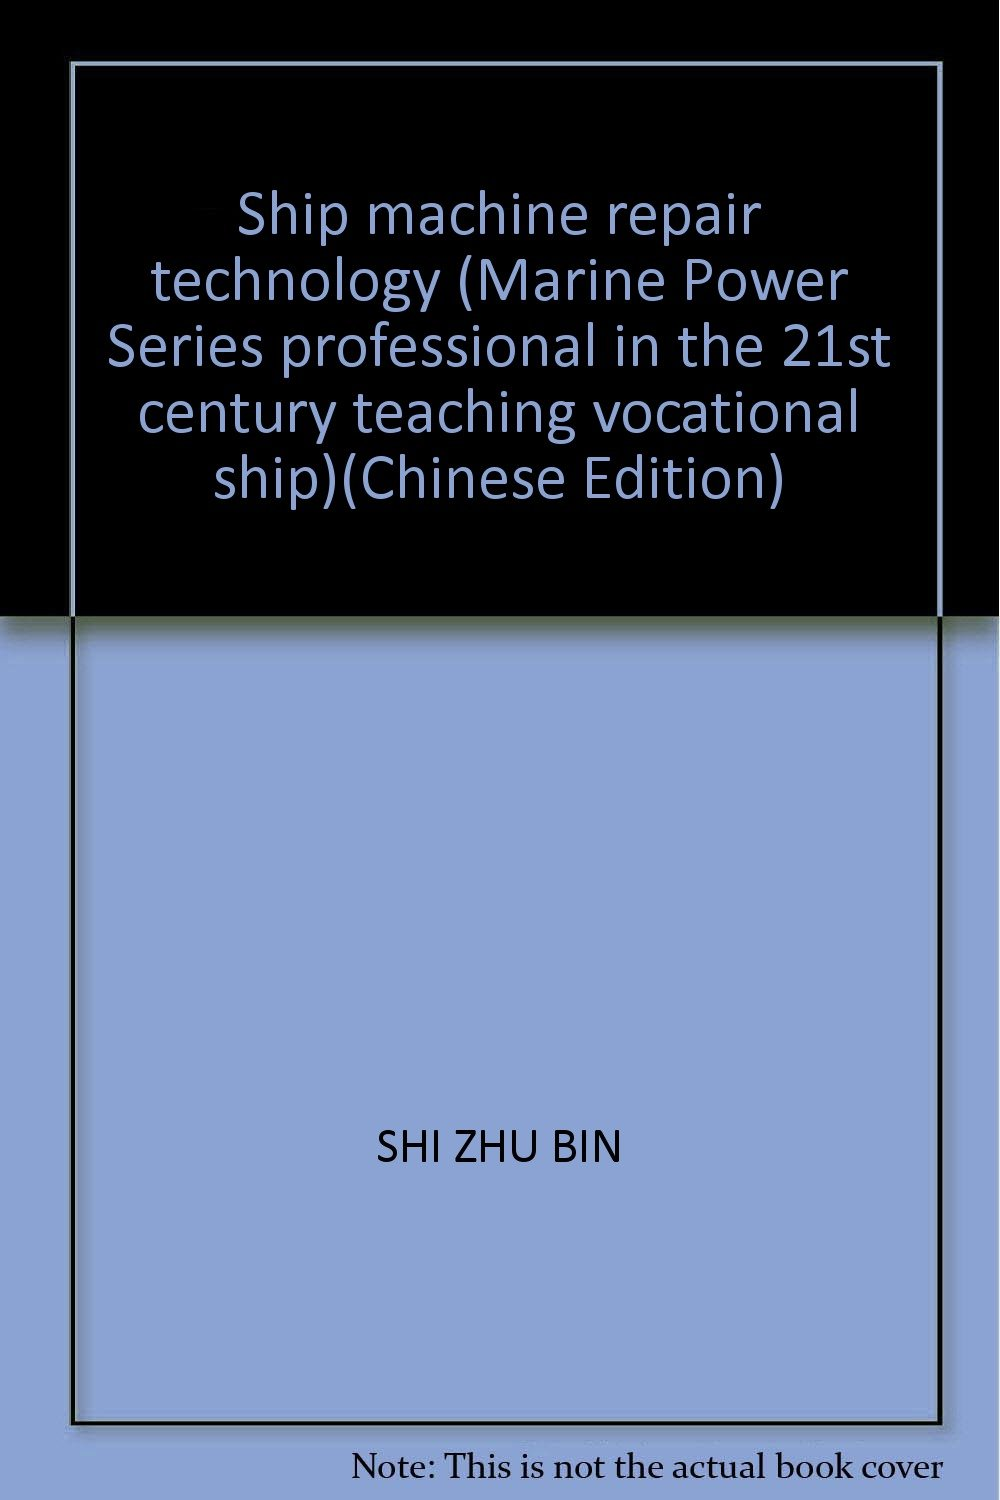 Ship machine repair technology (Marine Power Series professional in the 21st century teaching vocational ship)(Chinese Edition) pdf